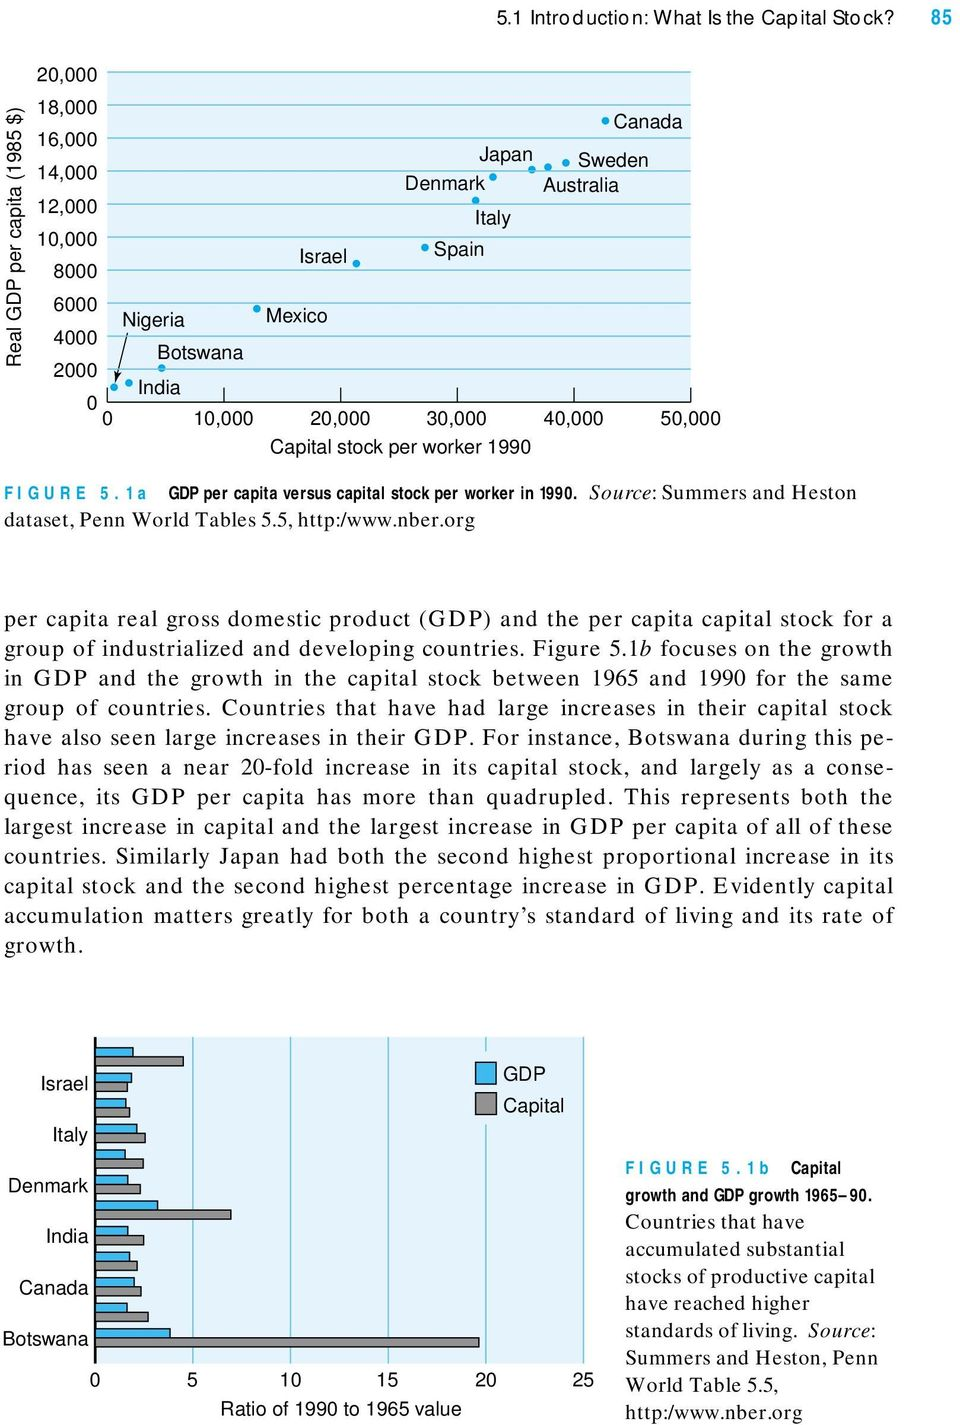 30,000 40,000 50,000 Capital stock per worker 1990 FIGURE 5.1a GDP per capita versus capital stock per worker in 1990. Source: Summers and Heston dataset, Penn World Tables 5.5, http:/www.nber.